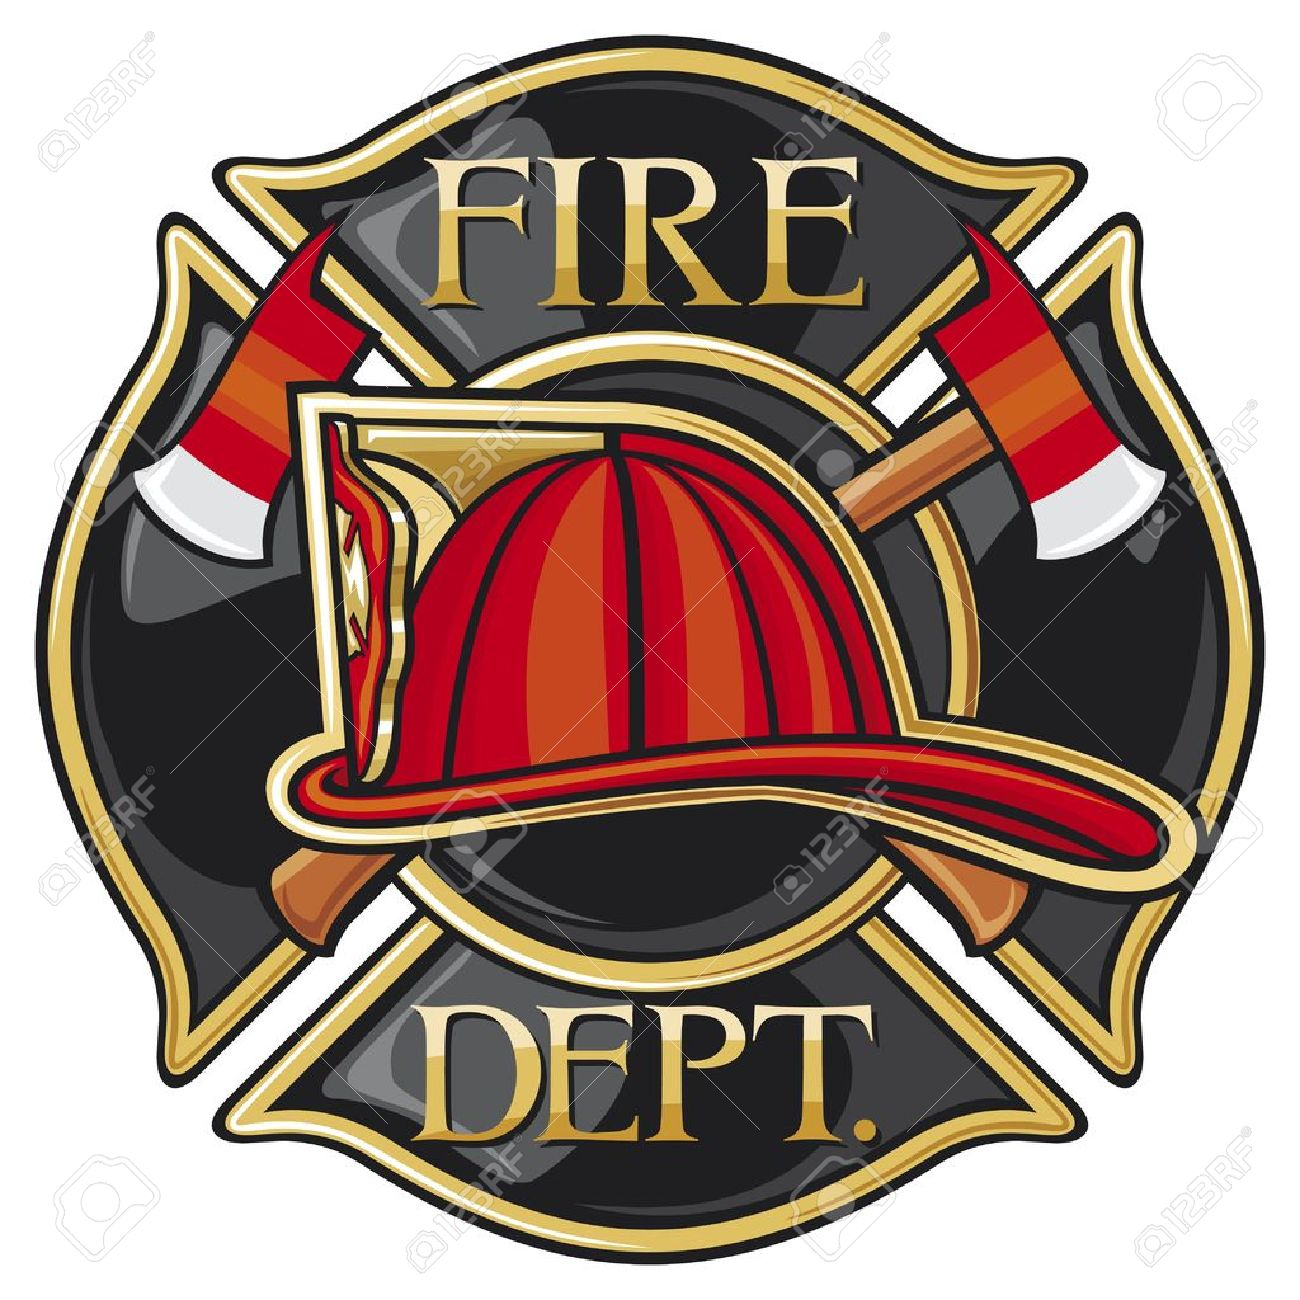 Fire department or firefighters maltese cross symbol royalty free fire department or firefighters maltese cross symbol stock vector 20303464 biocorpaavc